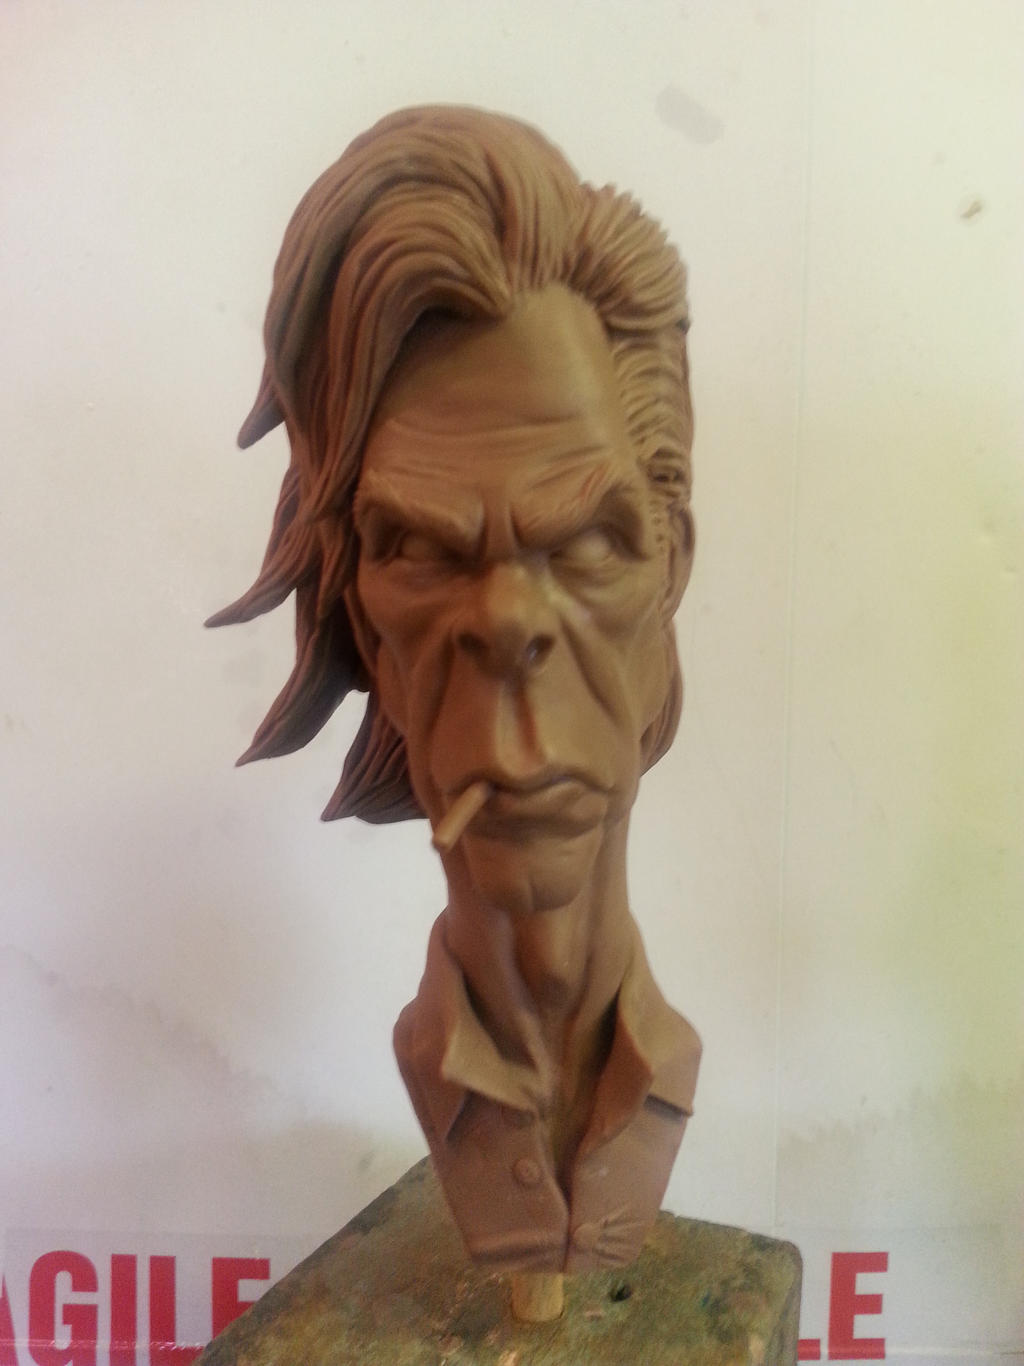 Nick Cave caricature bust by logan250